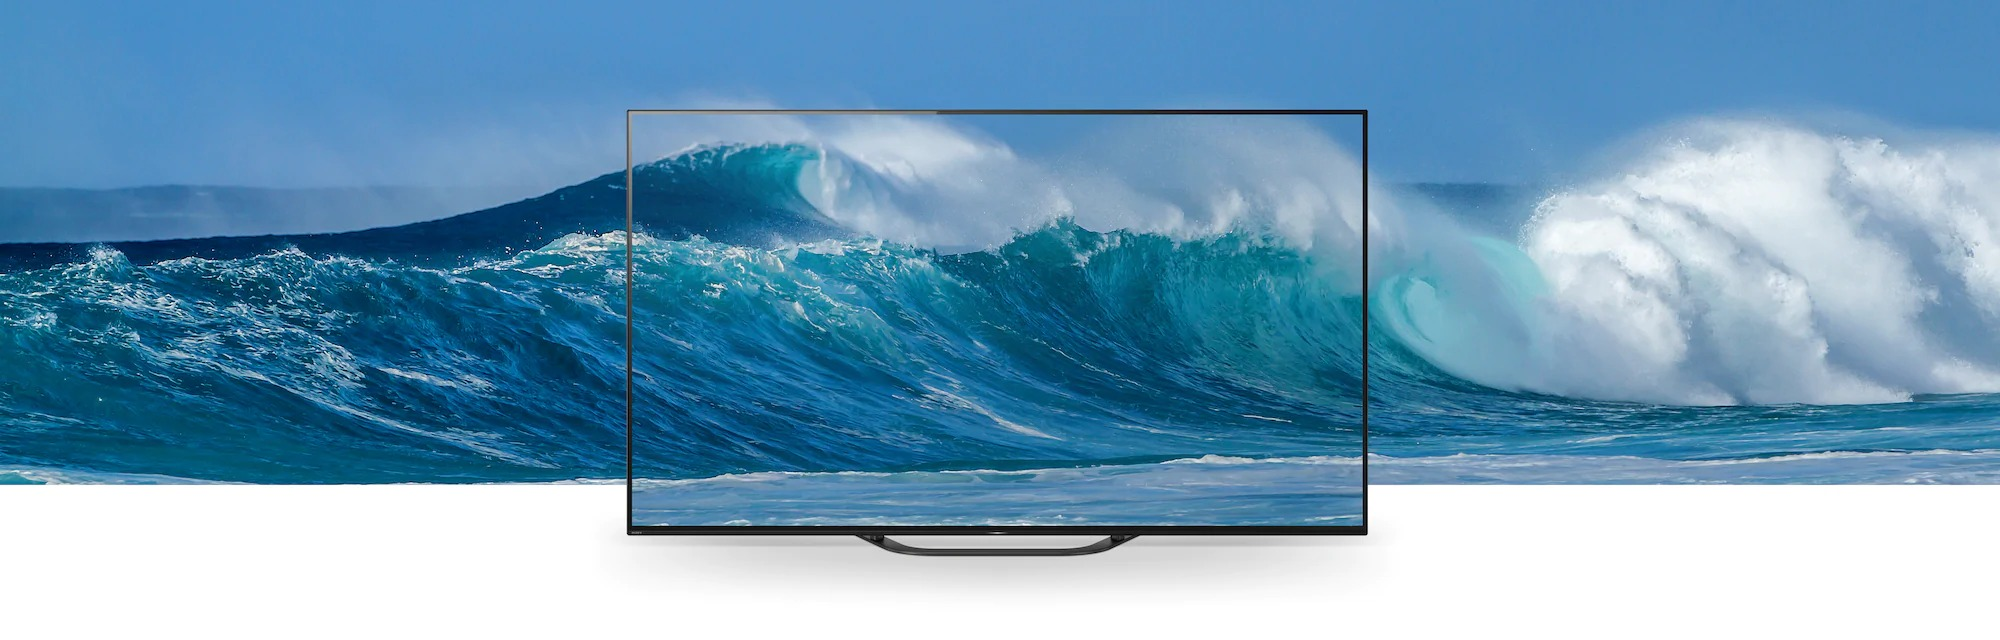 Ti vi Sony KD-55A8G Android TV OLED 4K Ultra HD HDR